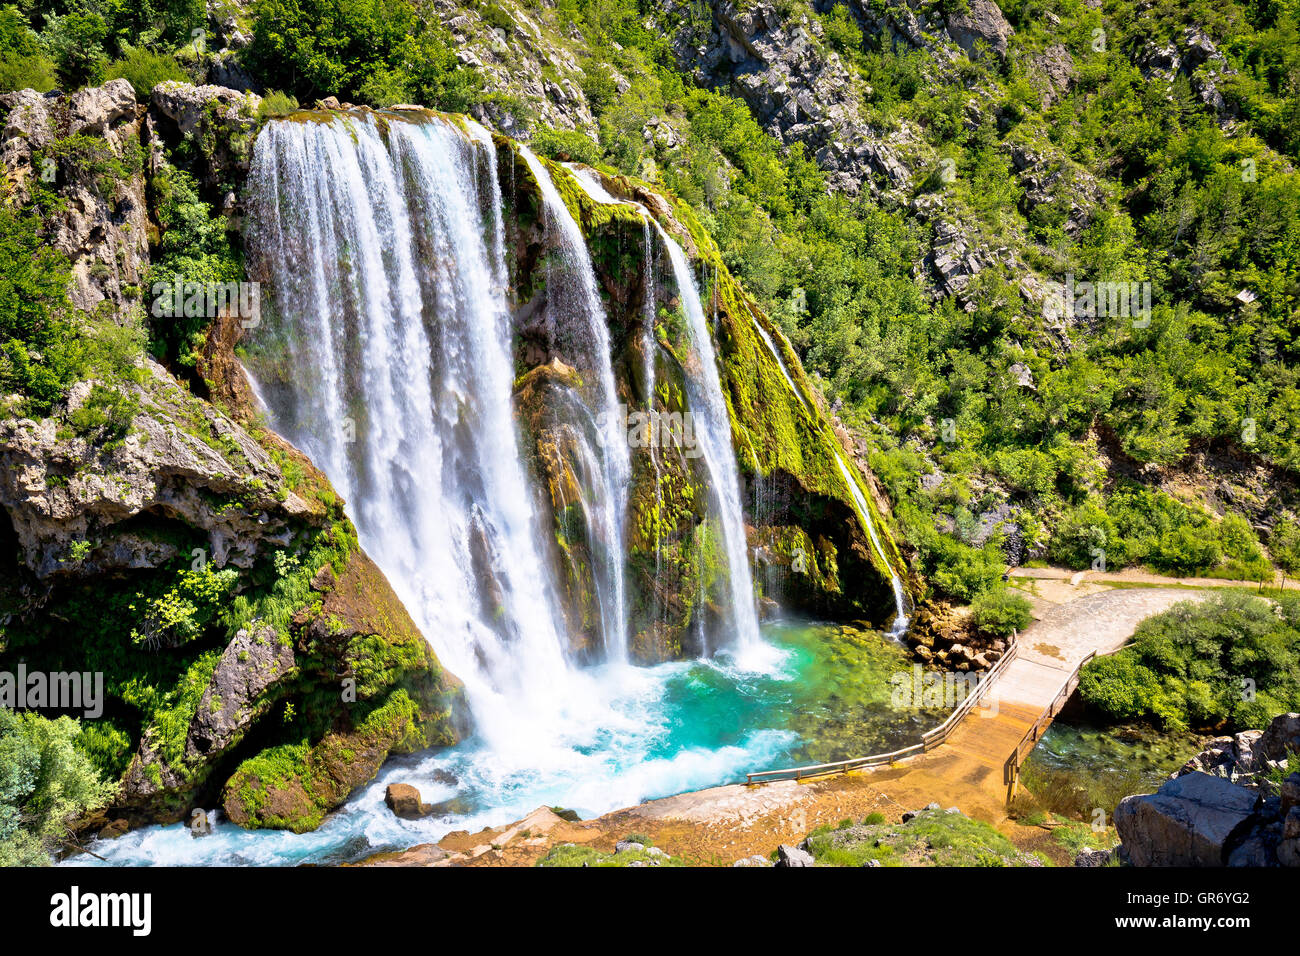 Krcic waterfall in Knin scenic view, Dalmatian inland, Croatia - Stock Image